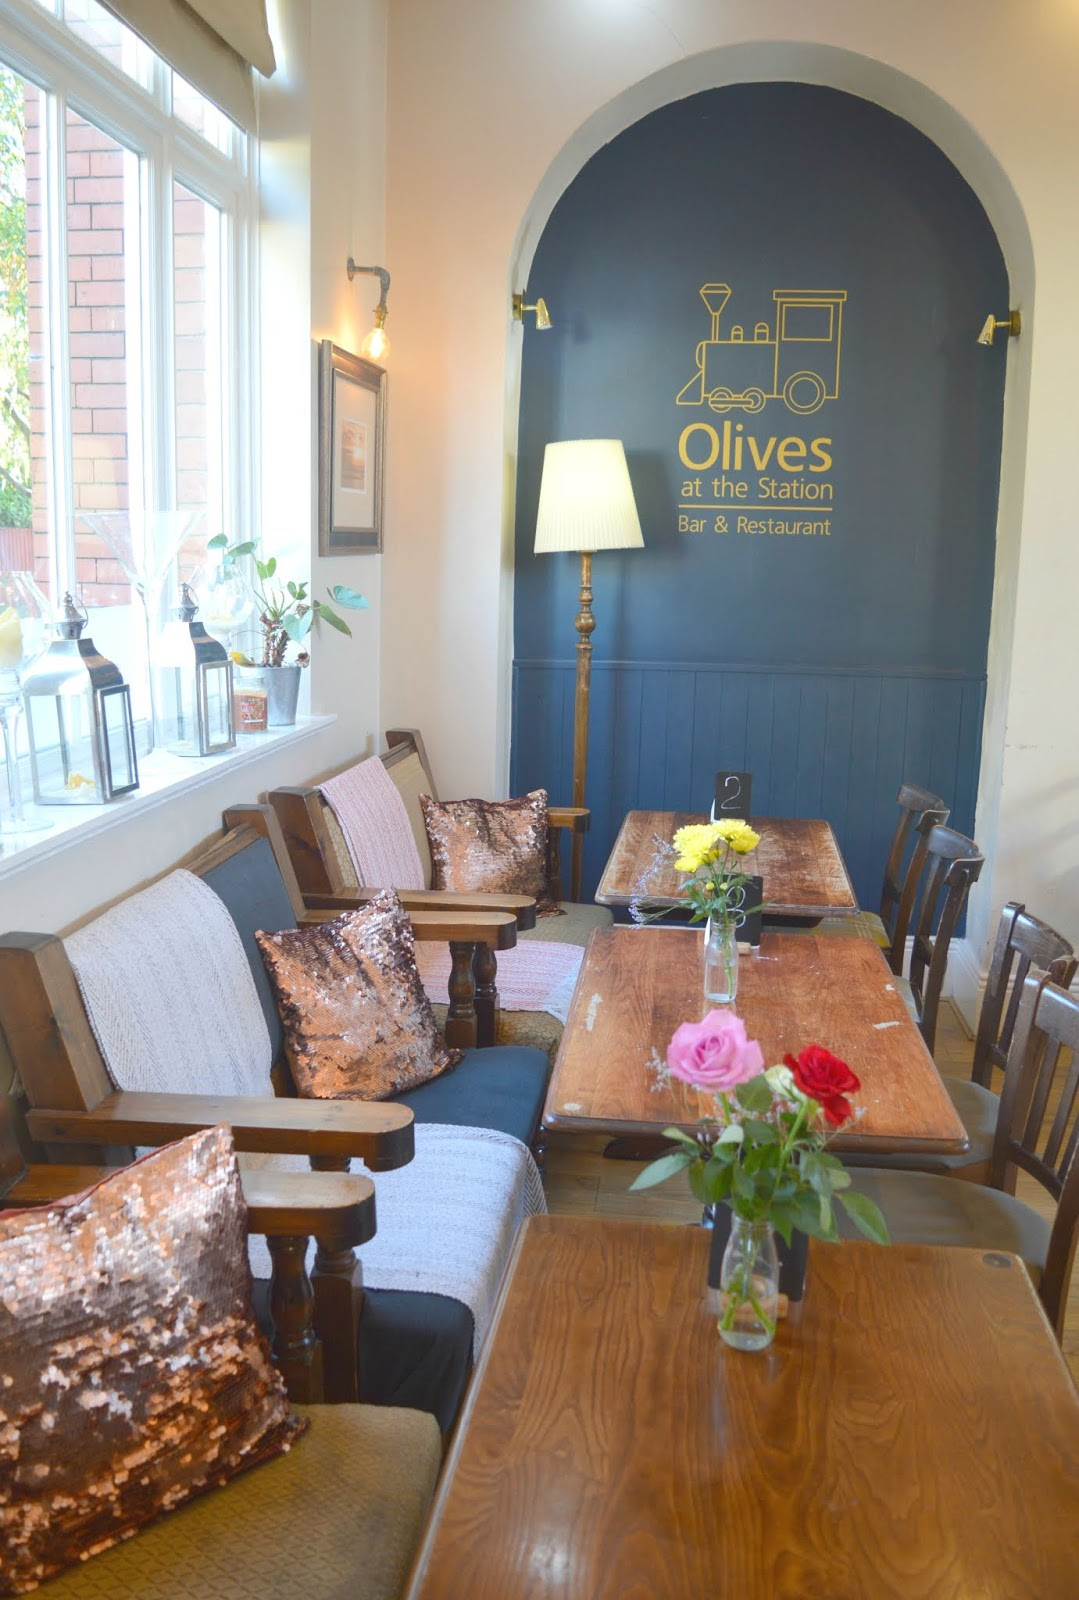 Olives at The Station, Whitley Bay